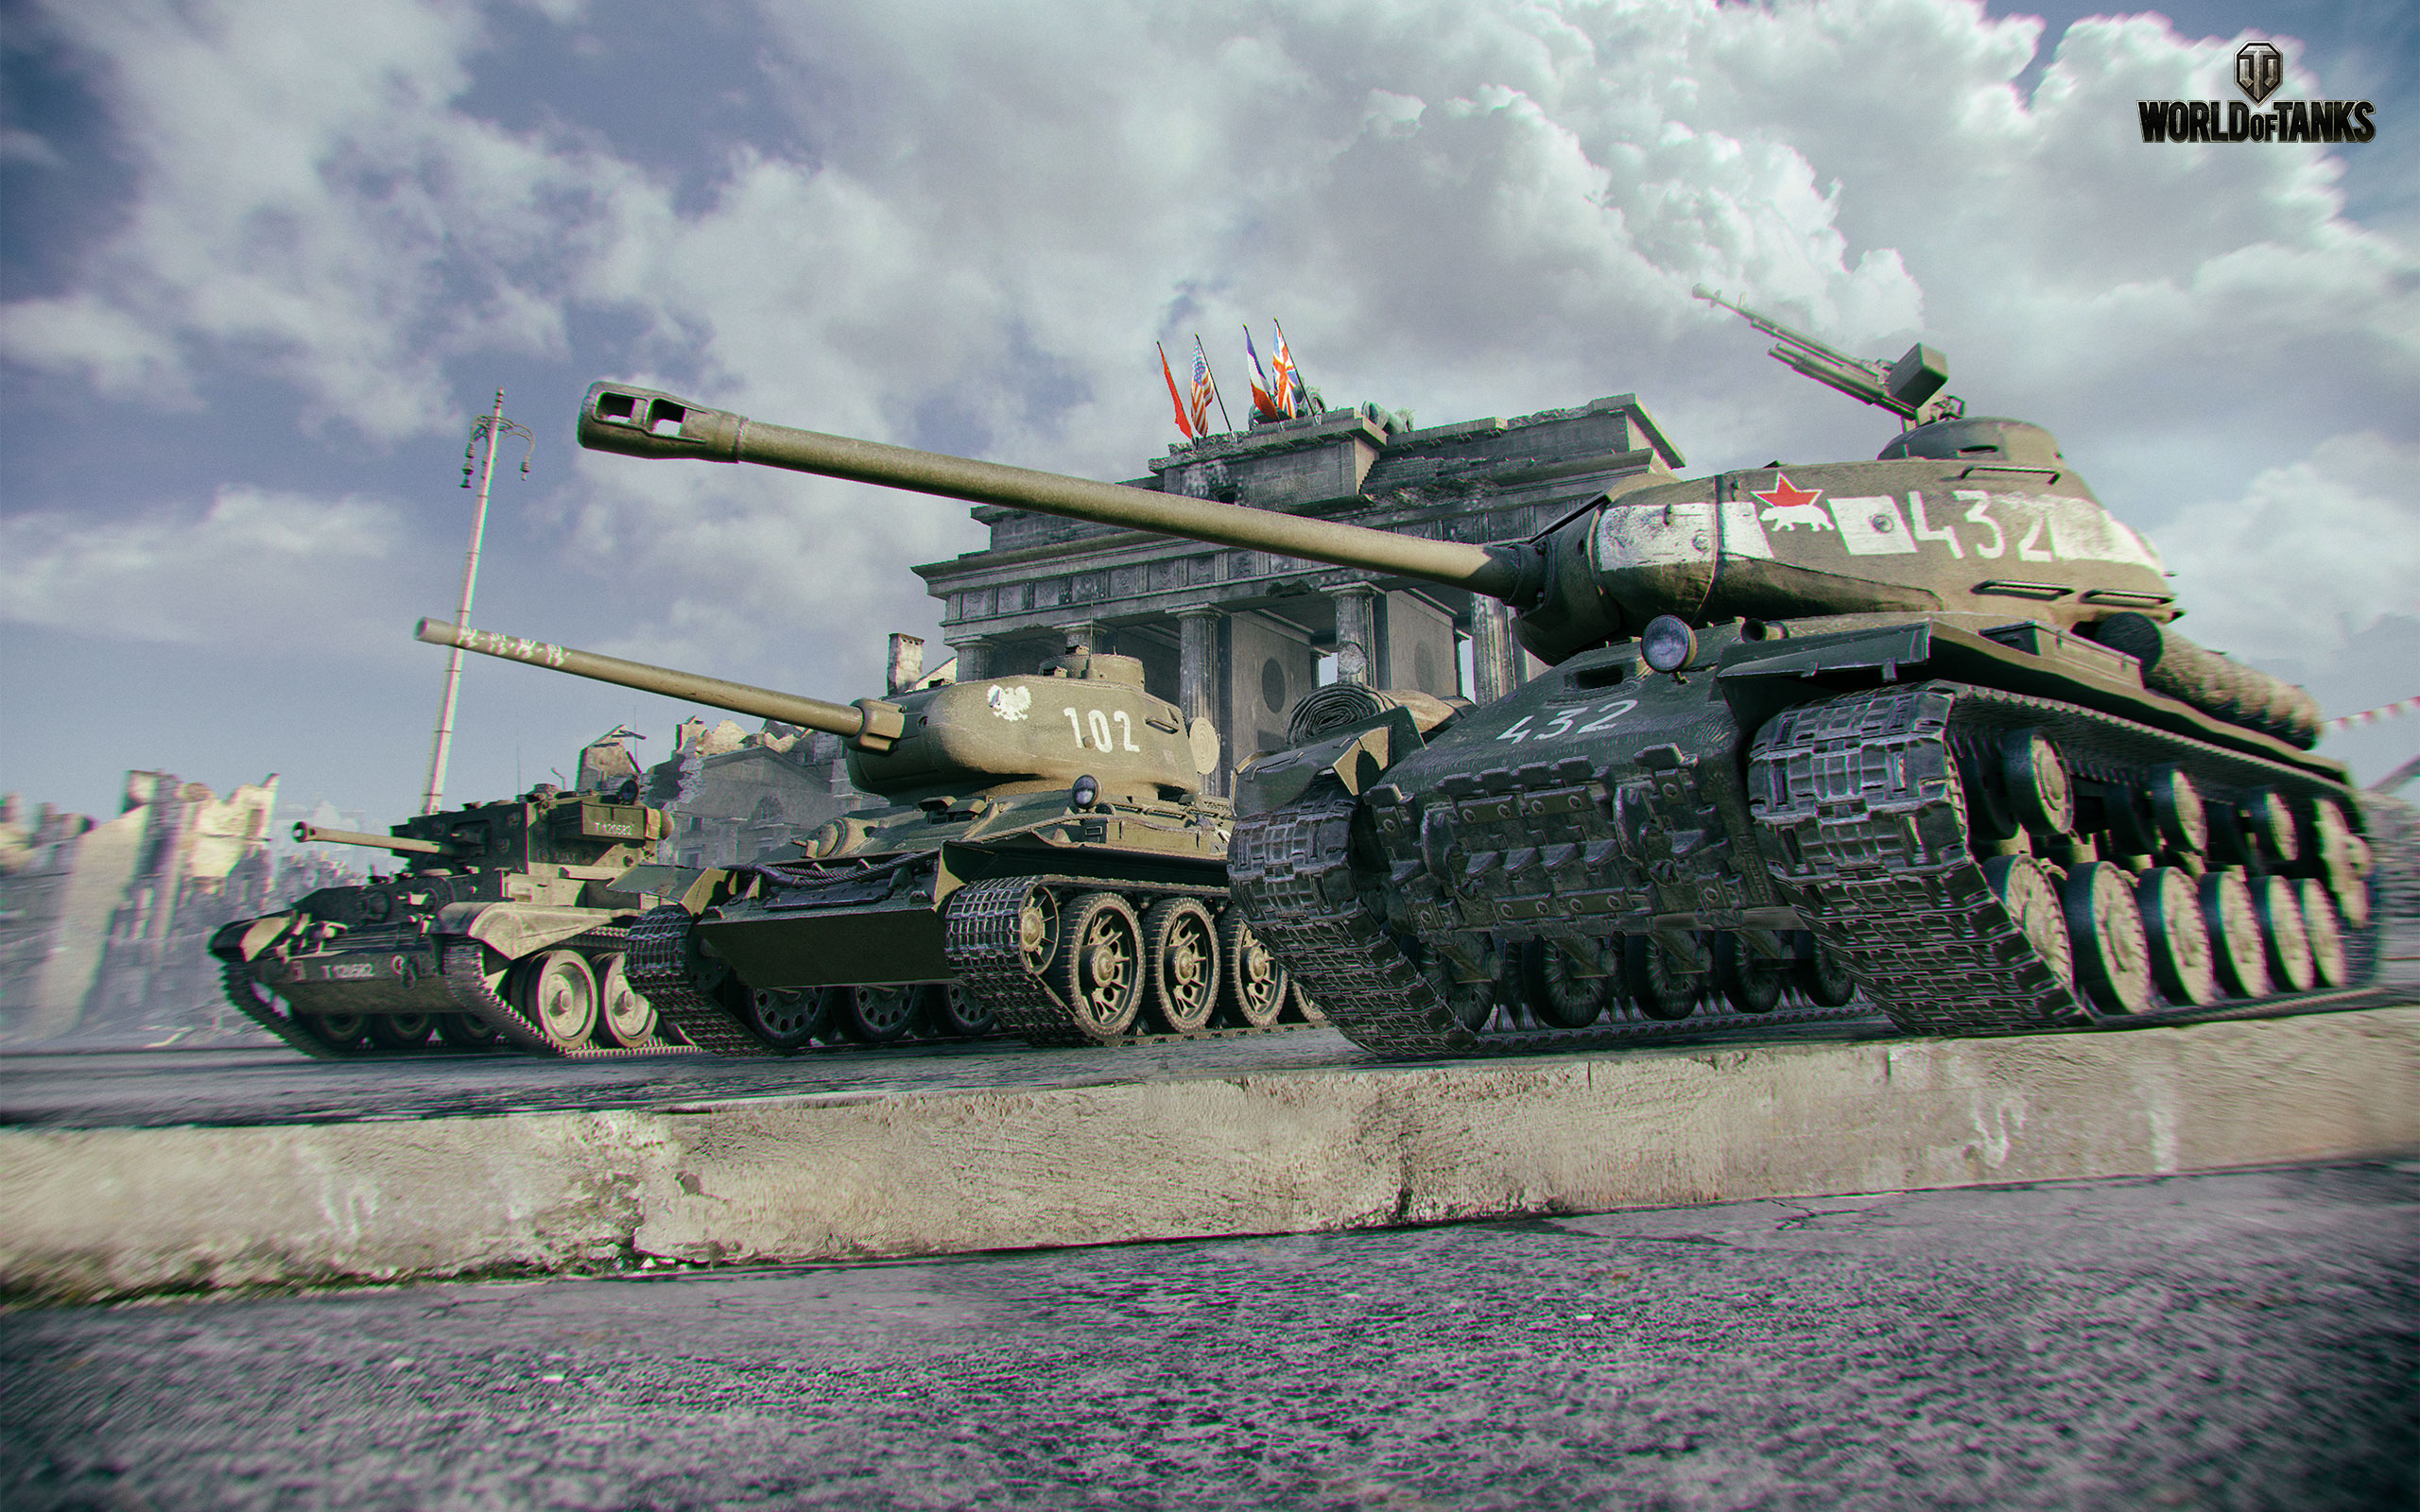 Wallpaper for May 2015 | General News | World of Tanks